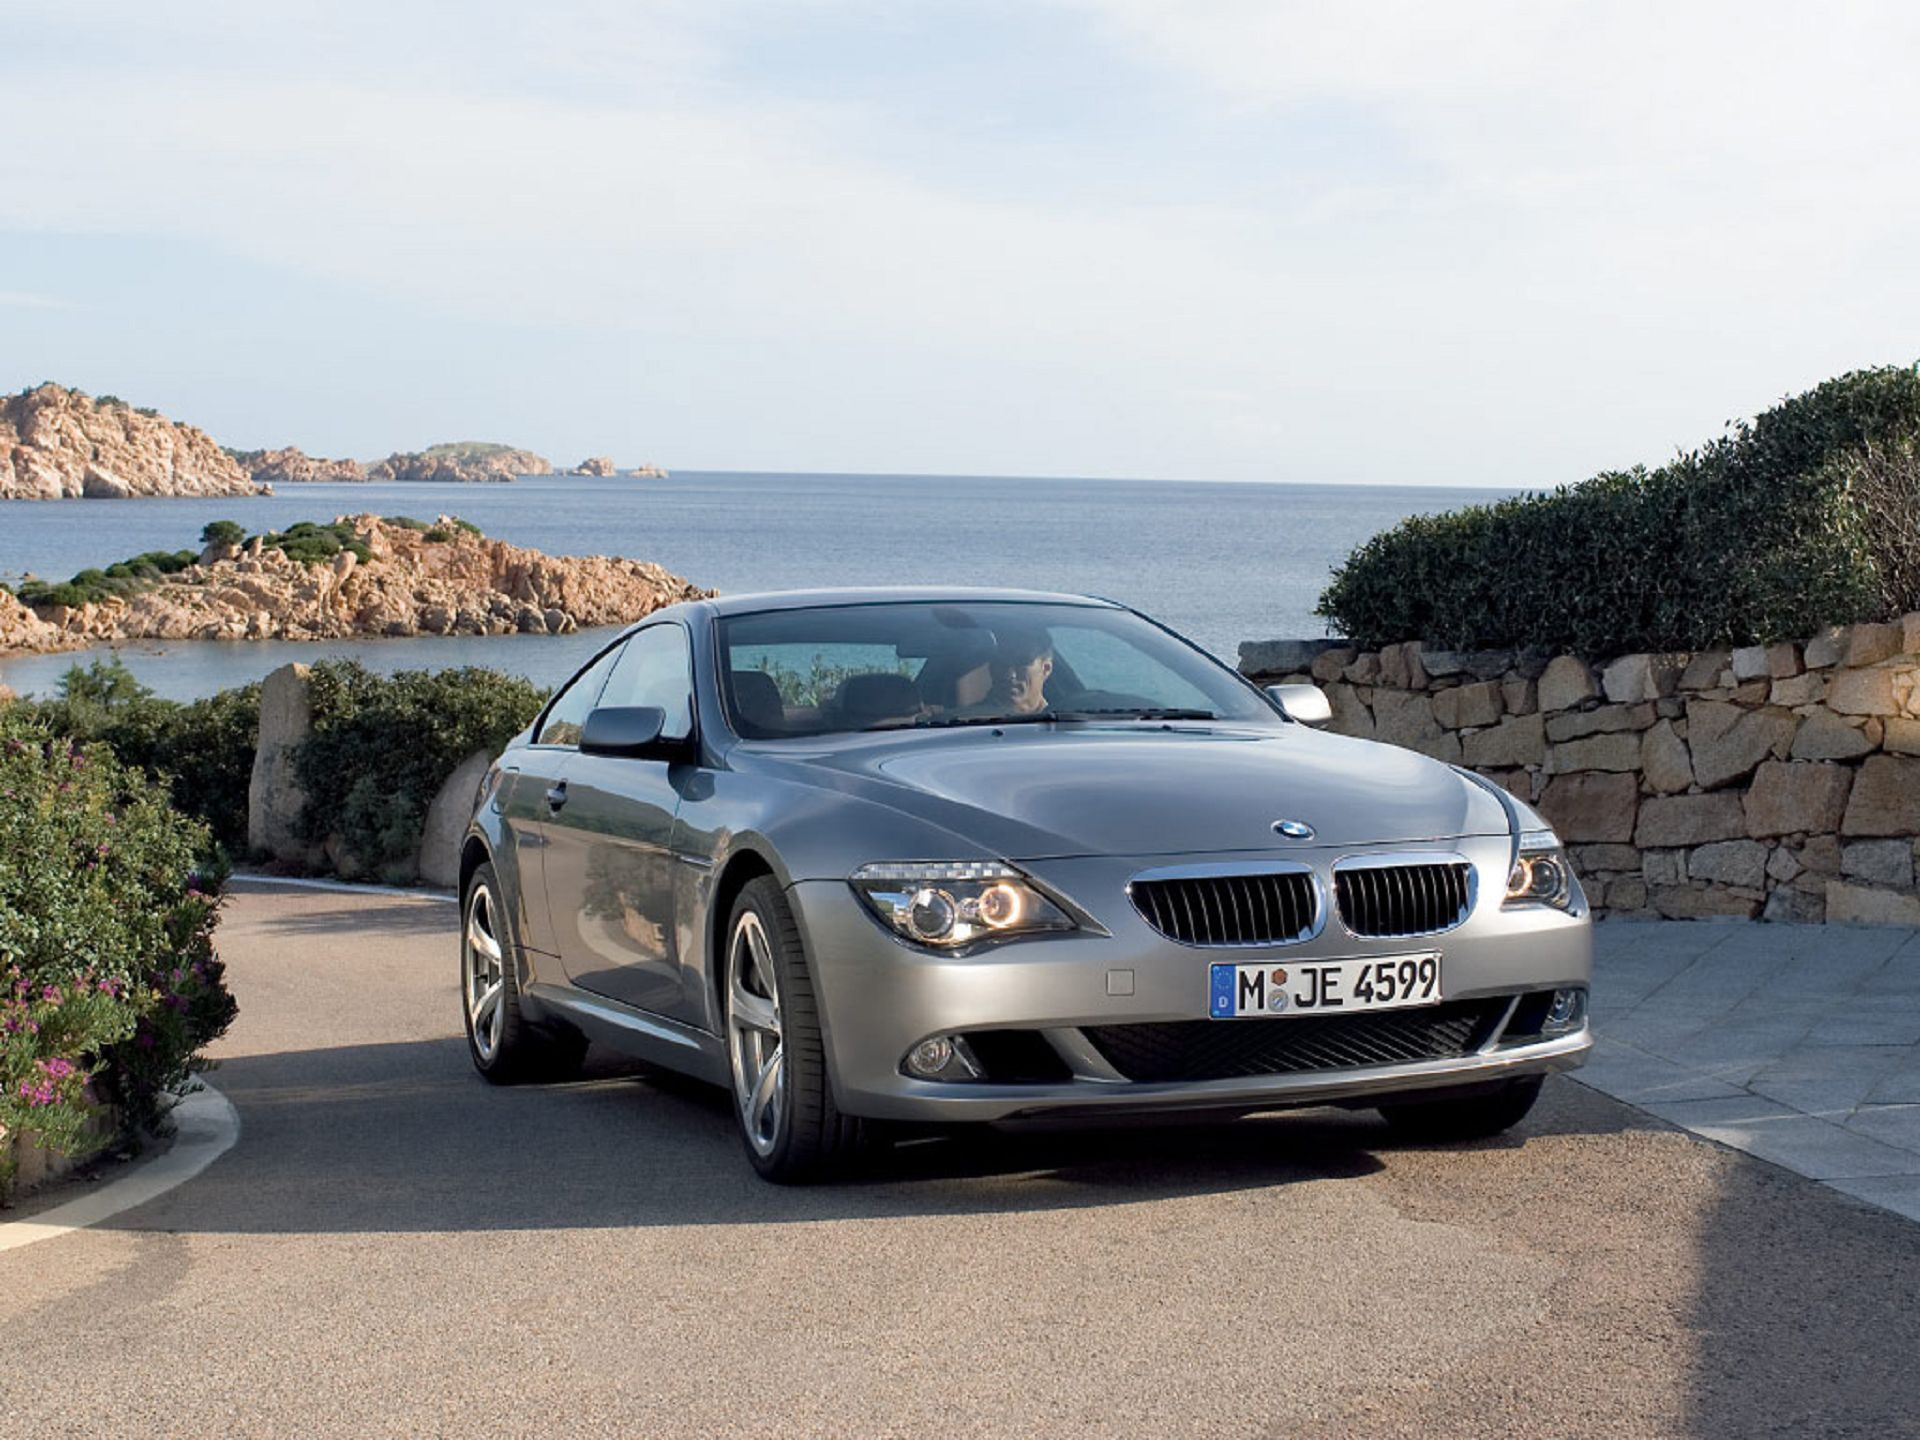 Bmw 635d 003 zilver cool cars wallpapers check out these